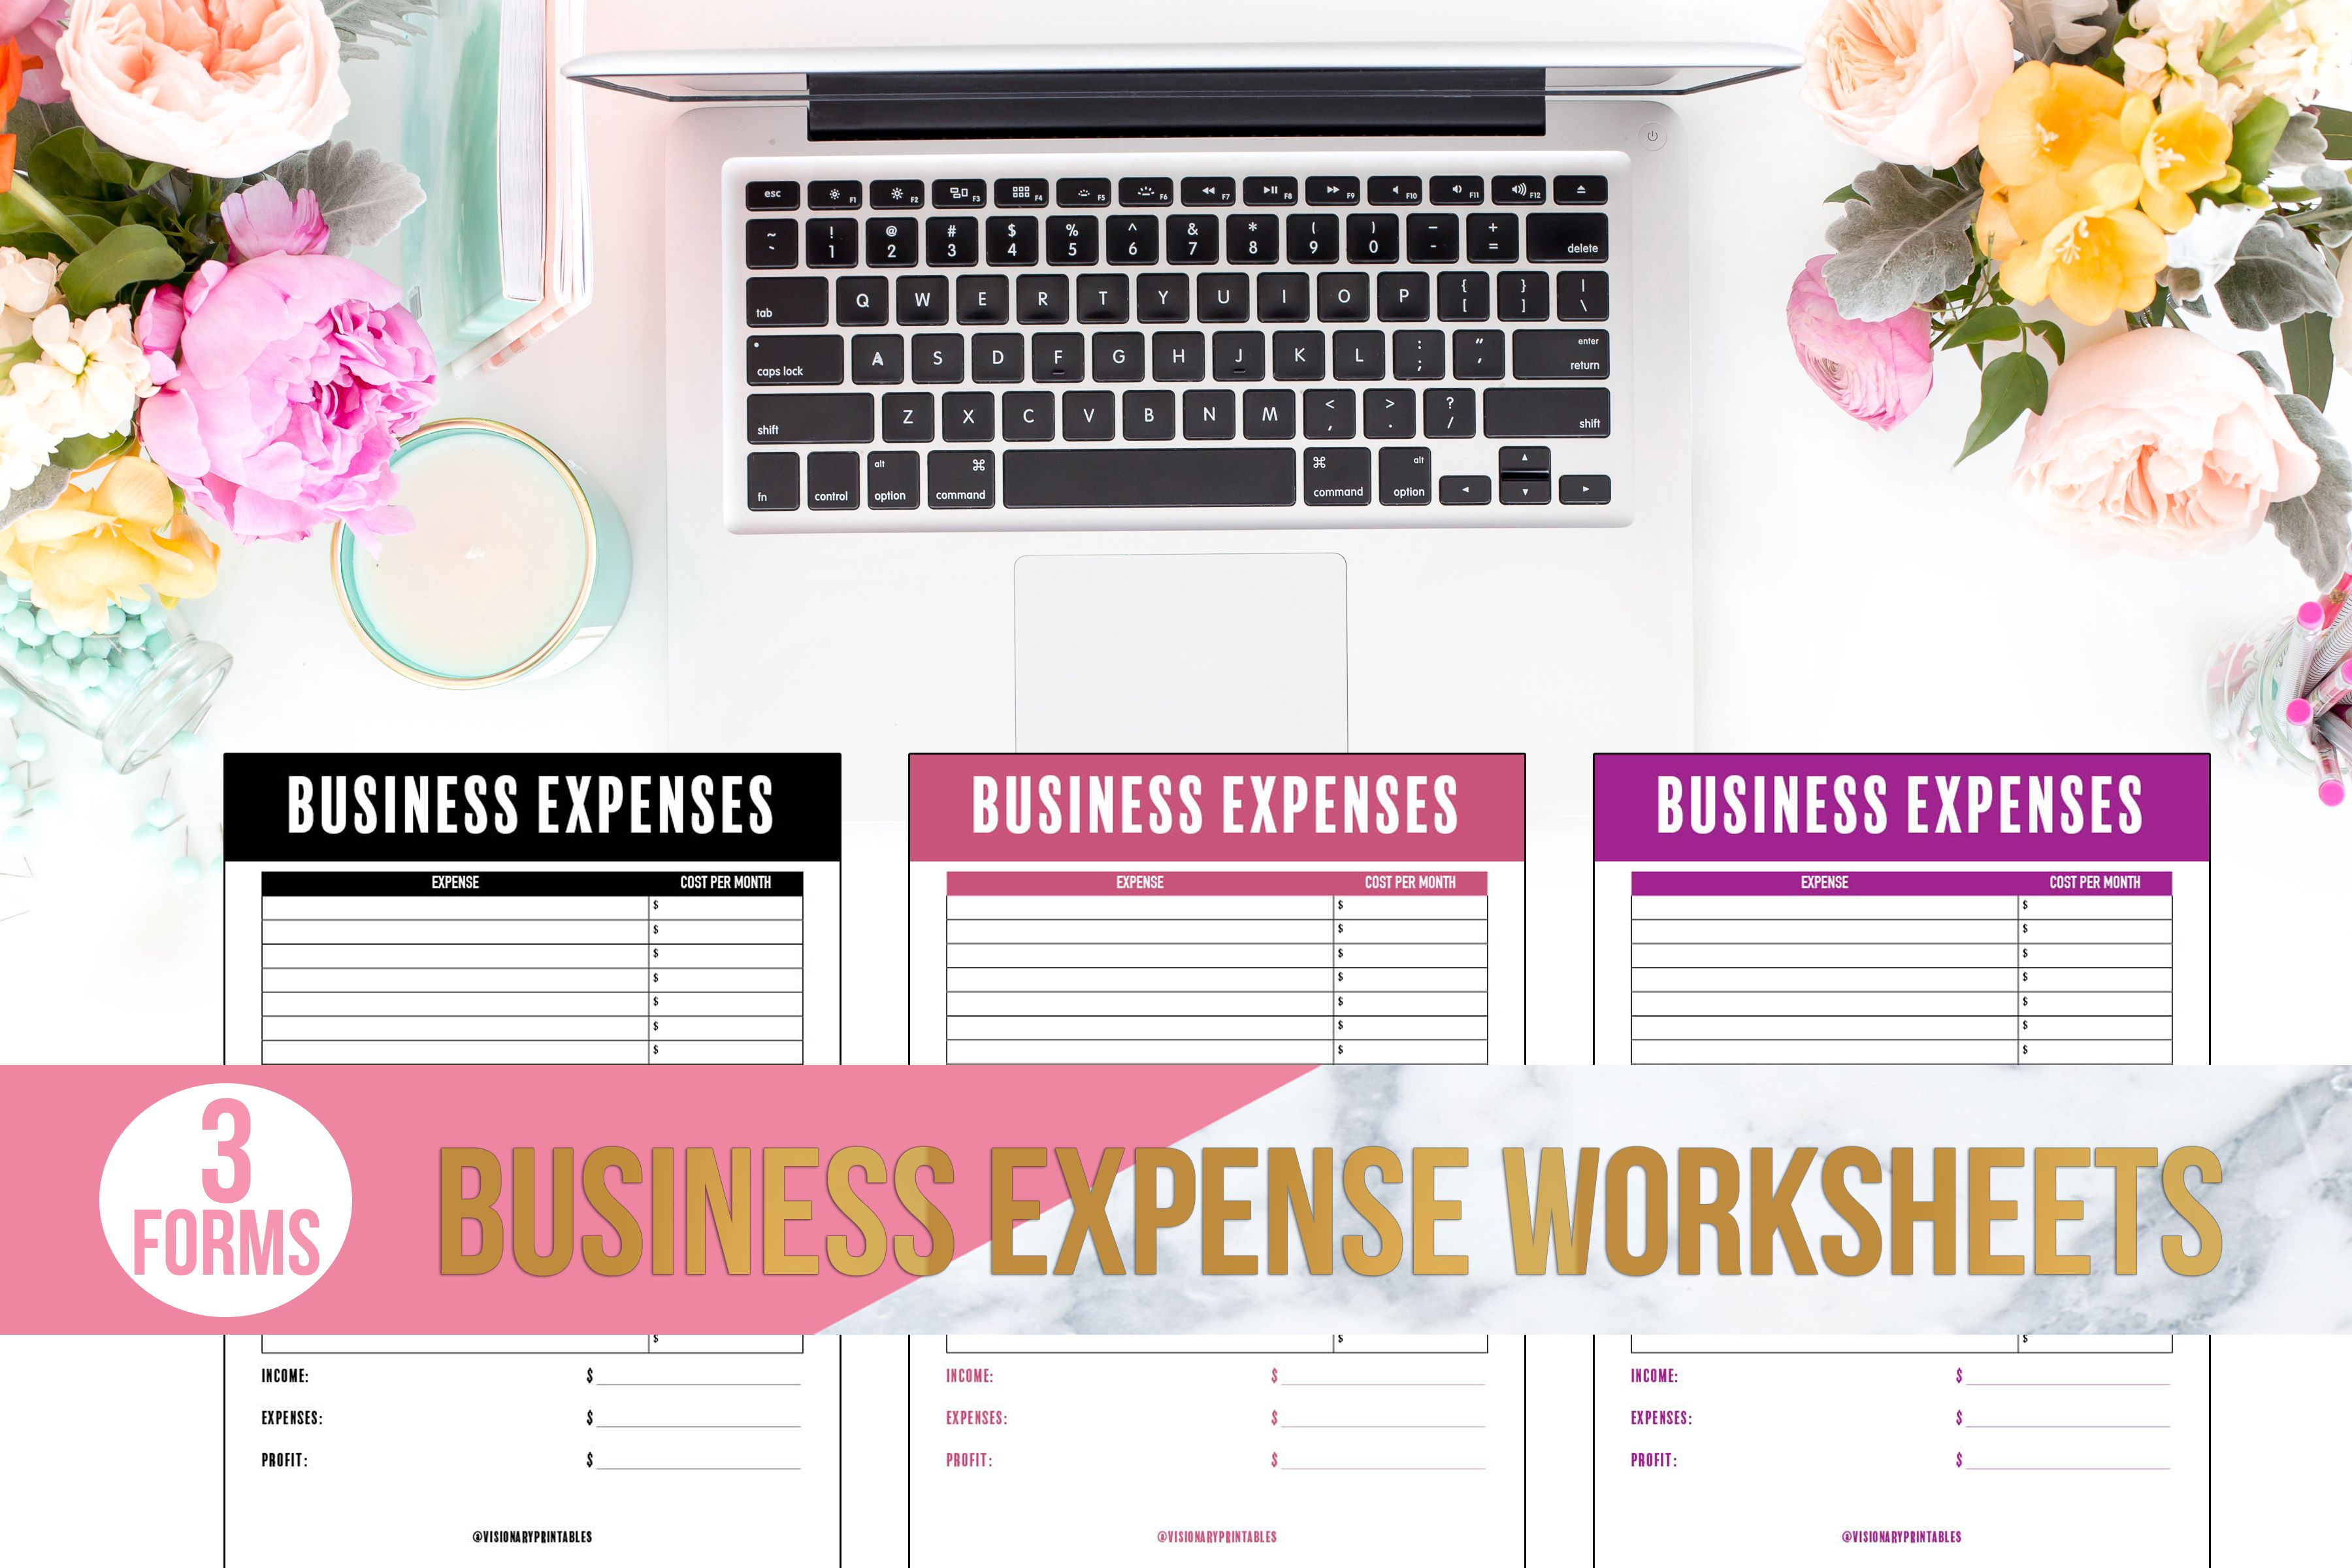 Business Expense Worksheets Business Expenses Profit